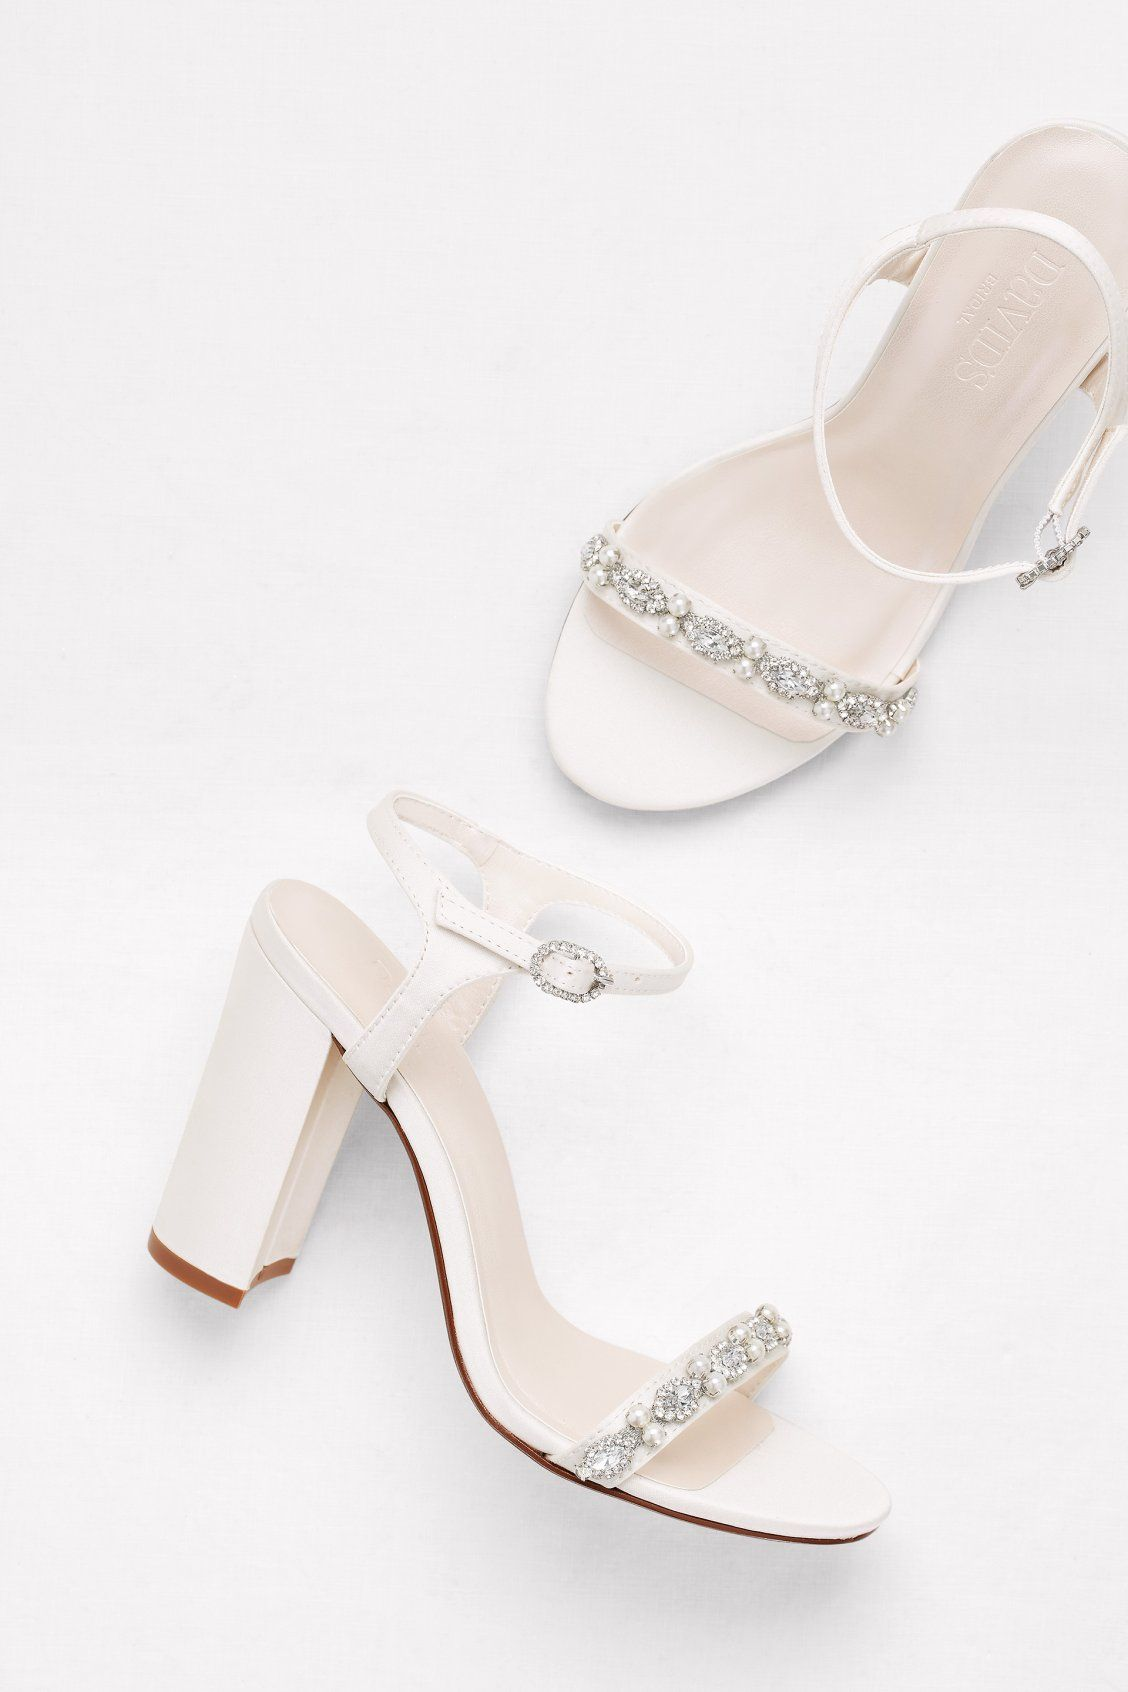 Embellished Satin Block Heel Sandals David S Bridal Satin Wedding Shoes Bridal Shoes Bride Shoes